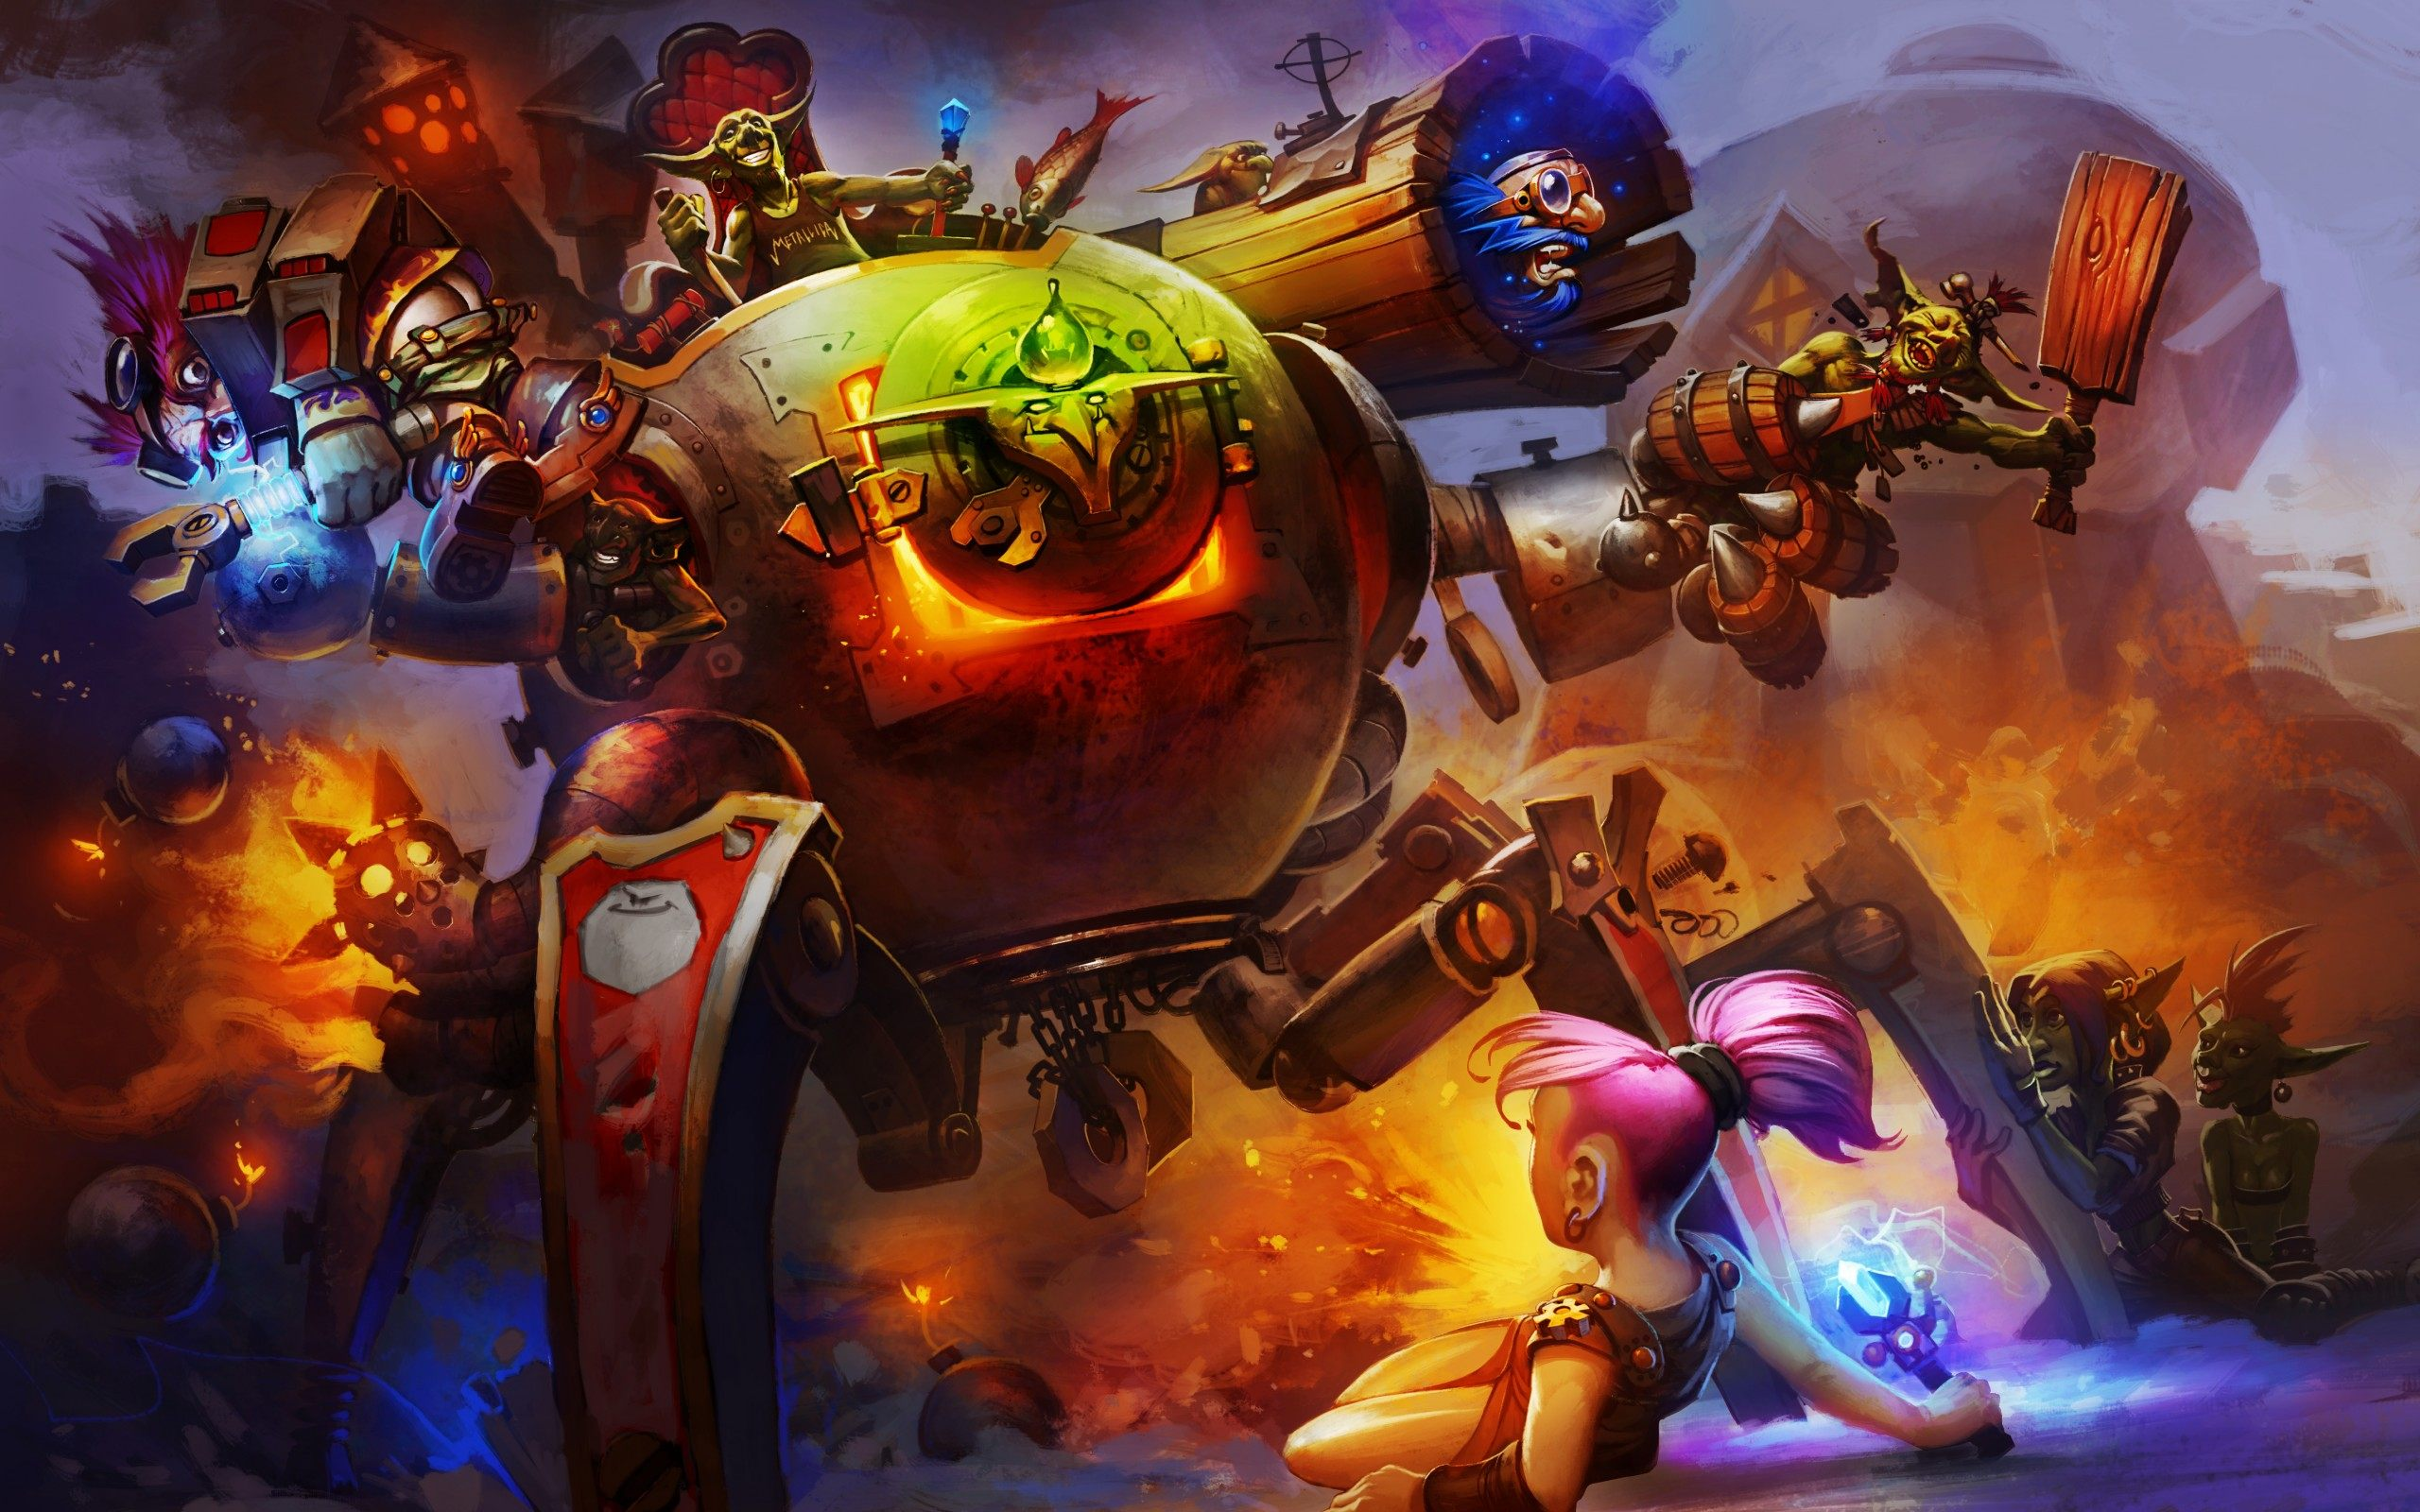 Hearthstone: Goblins Vs. Gnomes Download